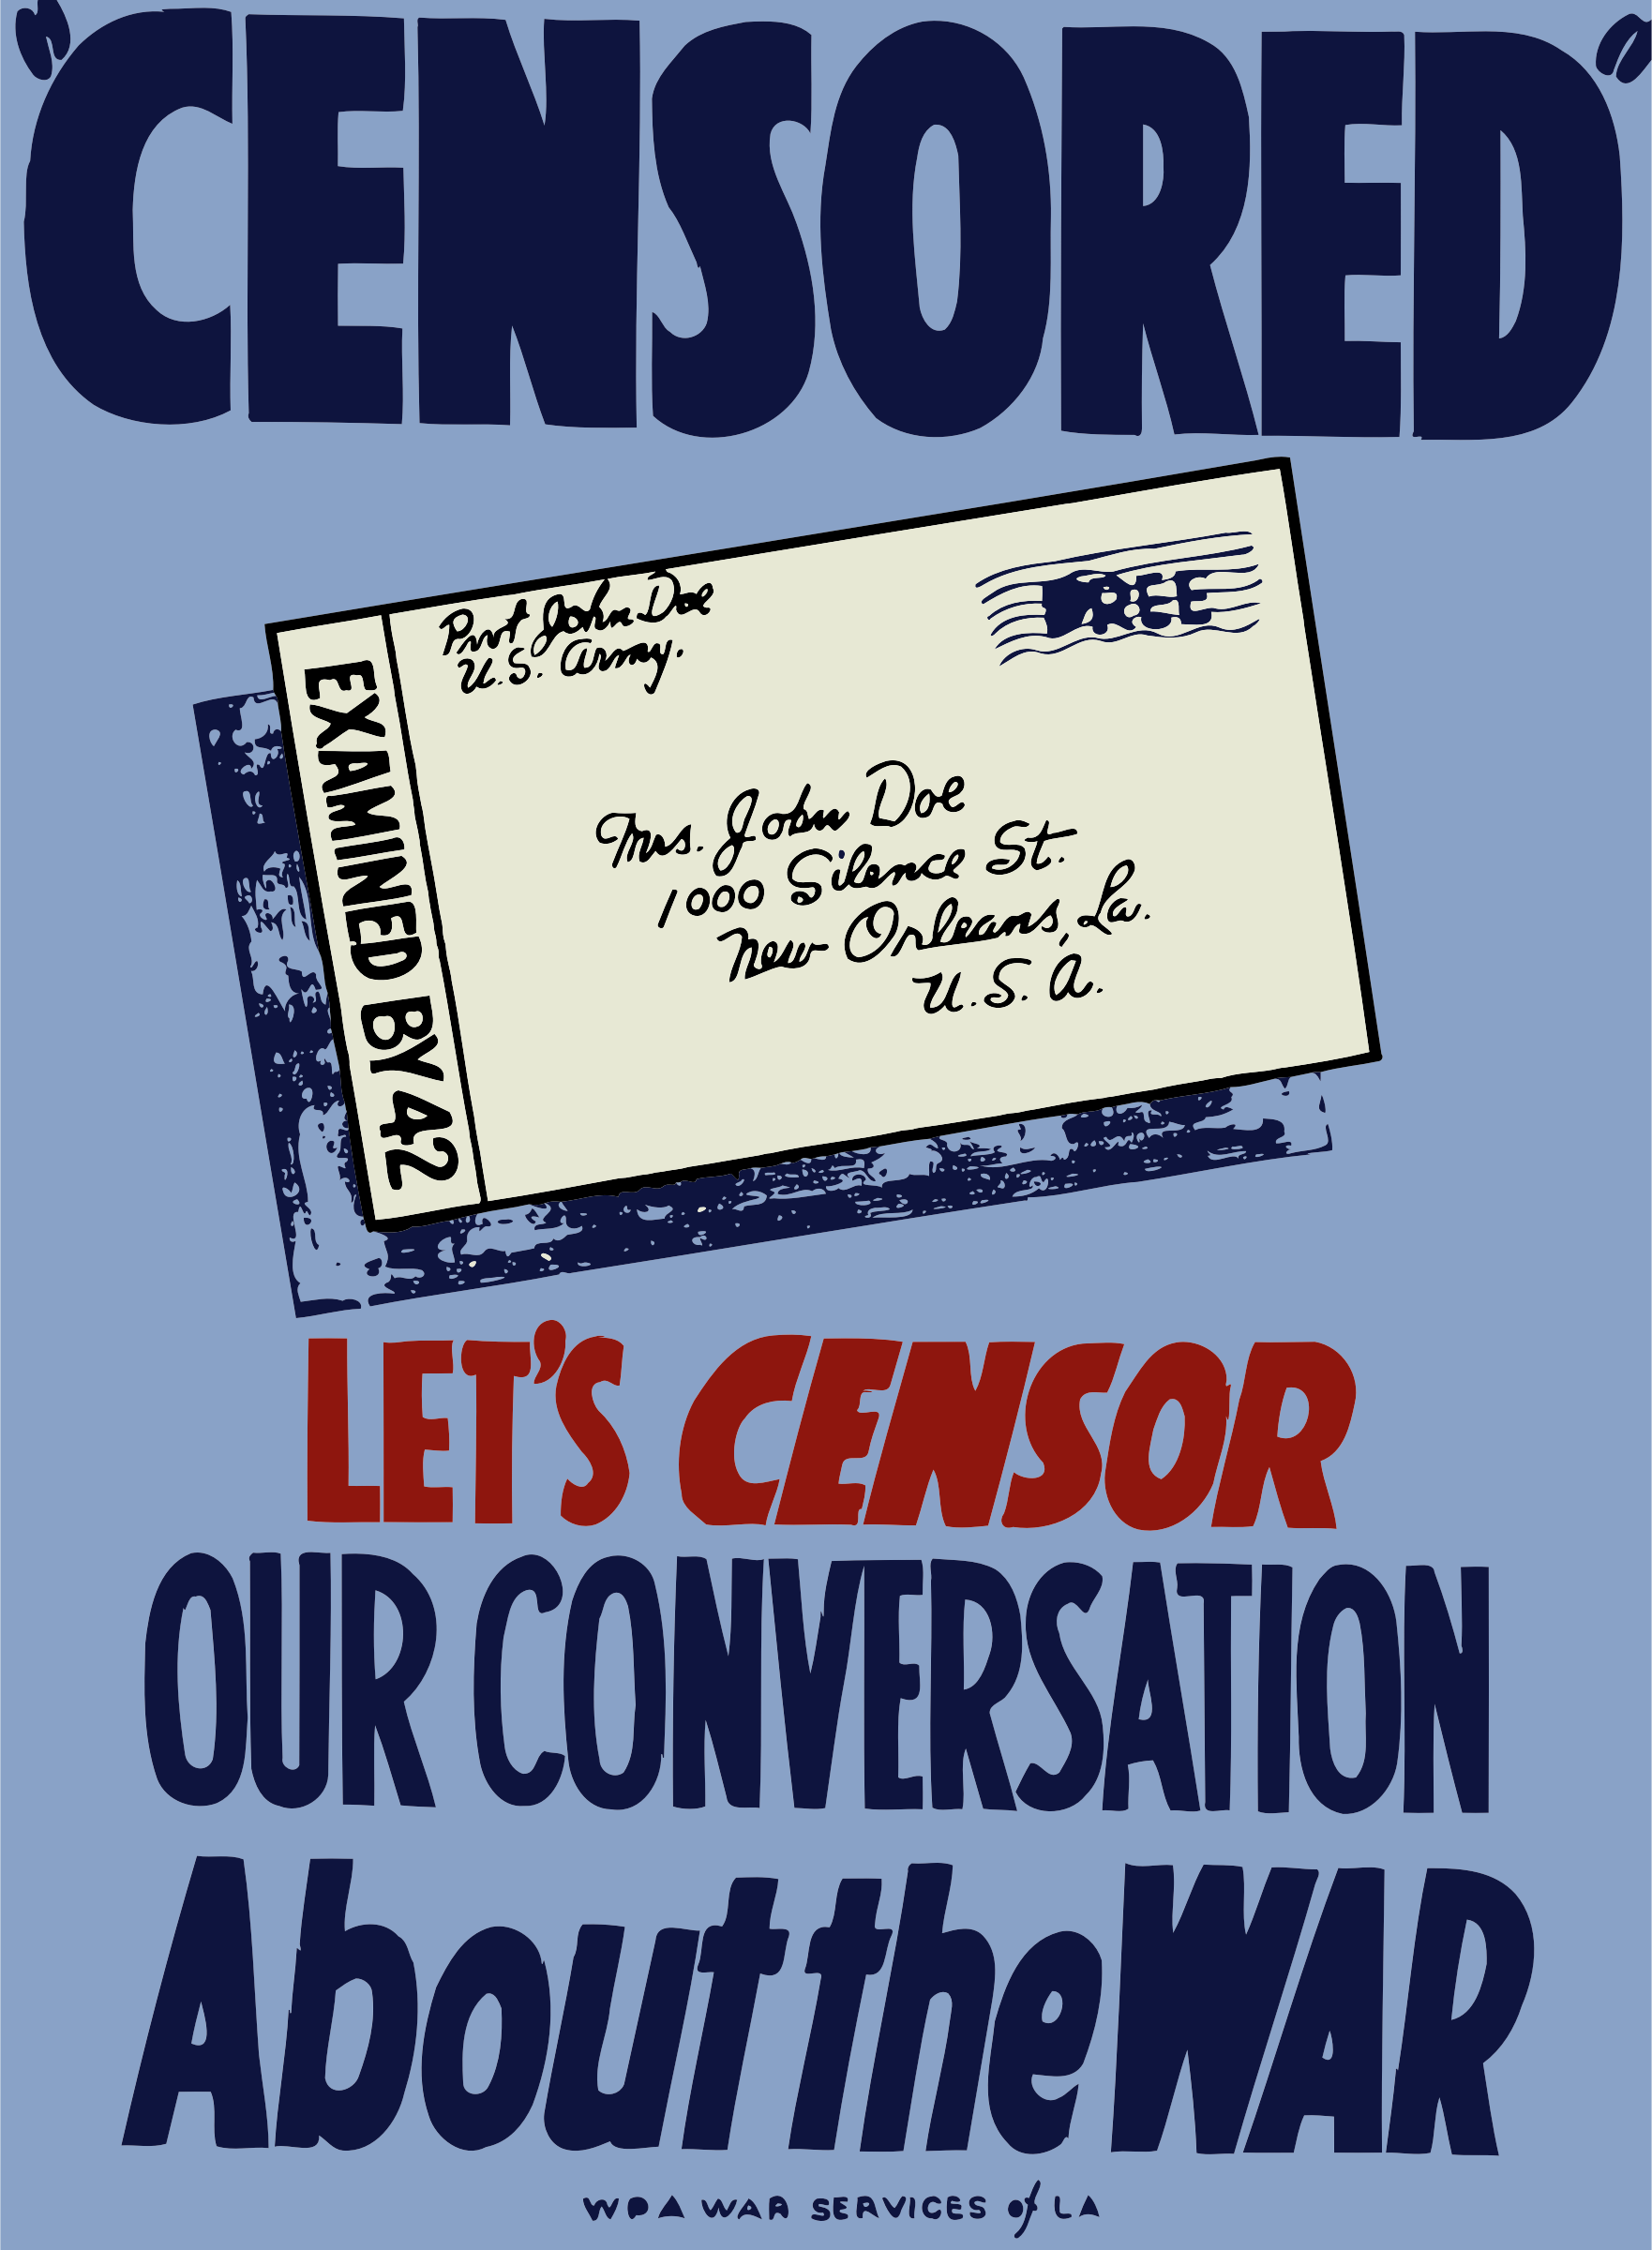 Censorship war poster by Firkin